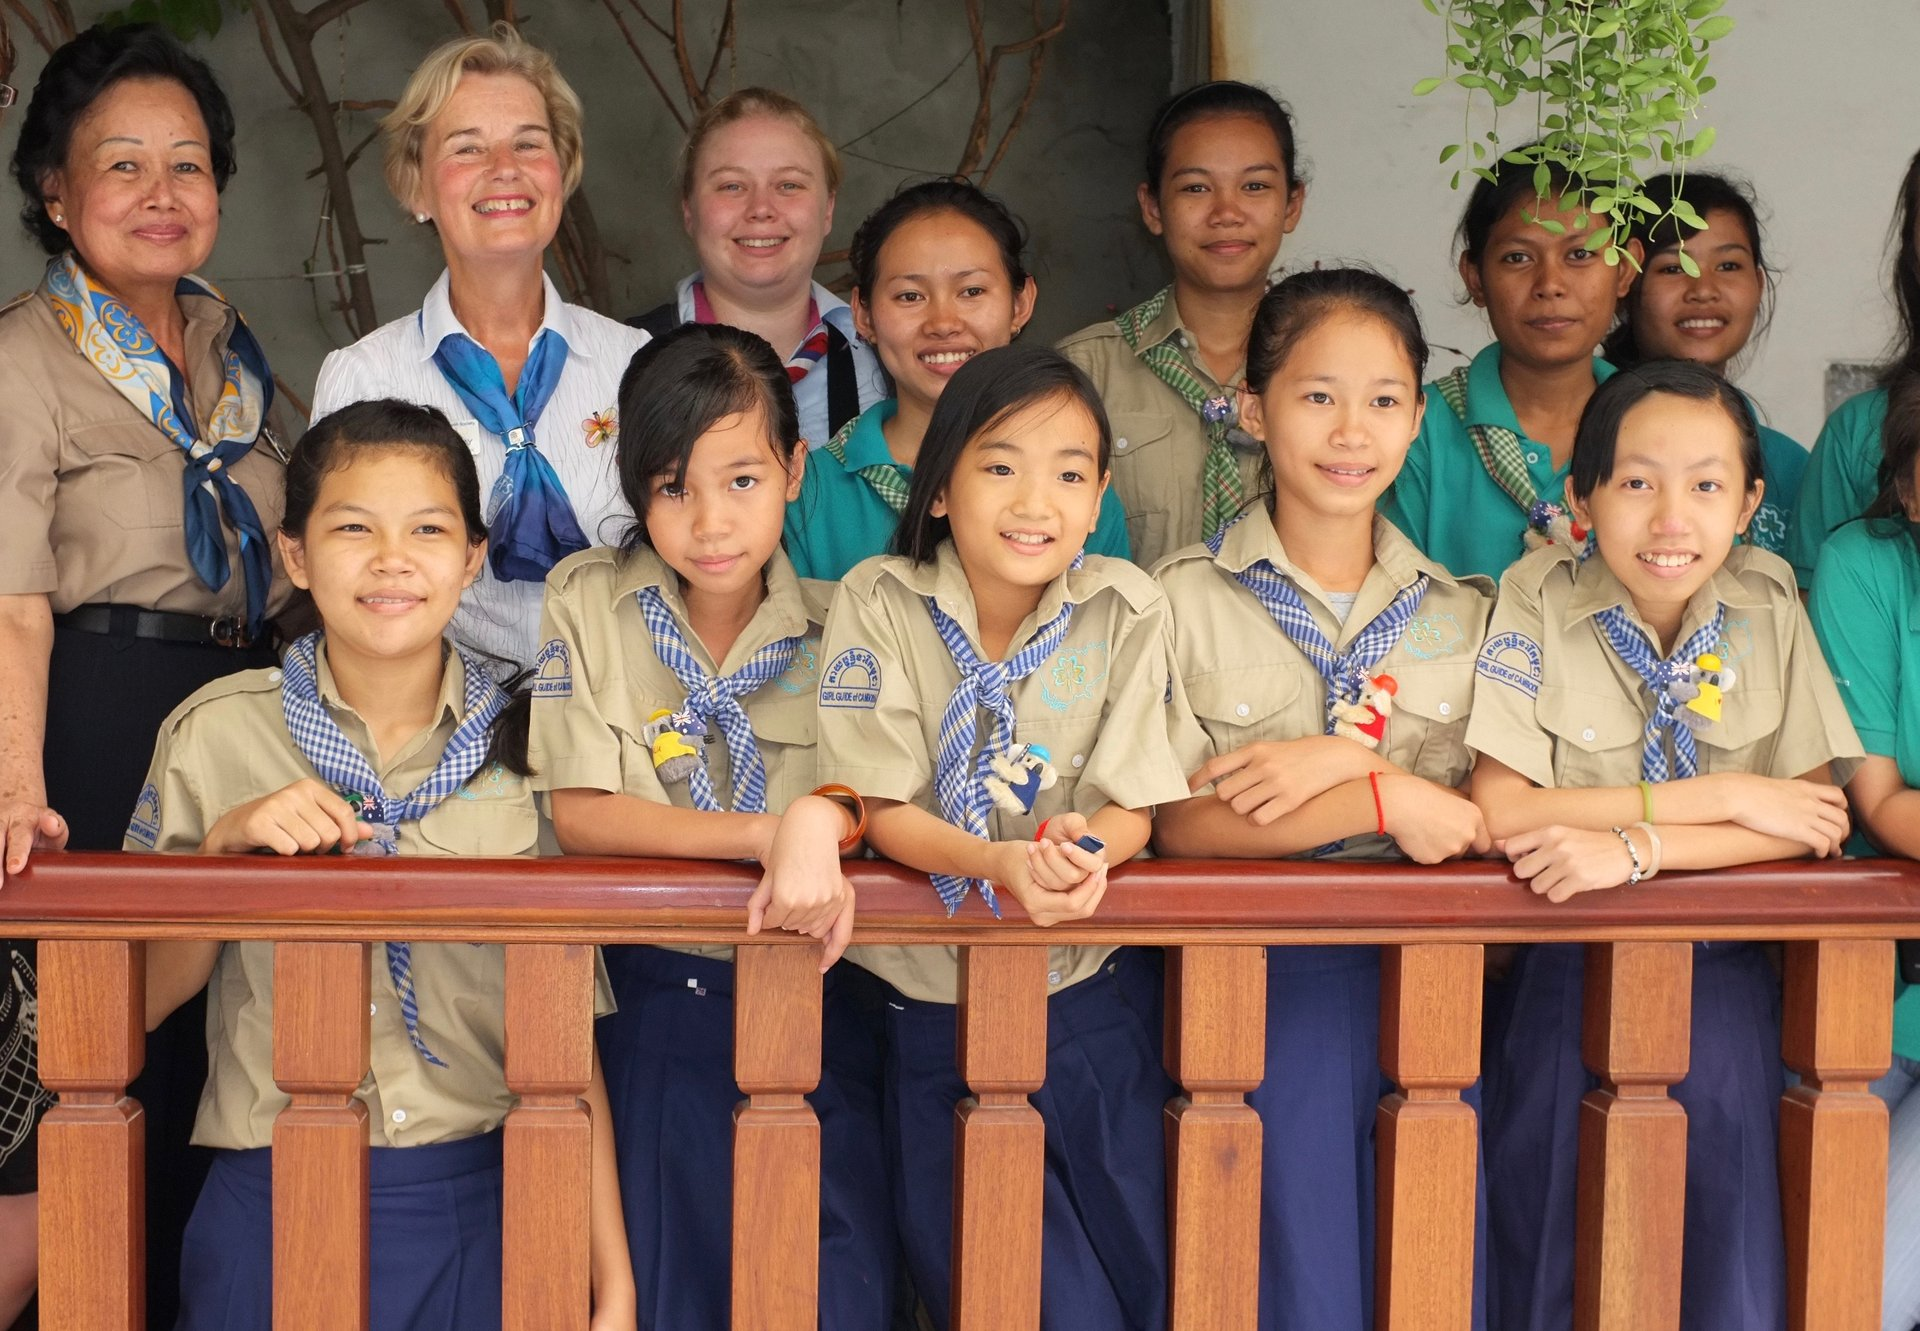 012017 Cambodia Alison Spurway OBE news story